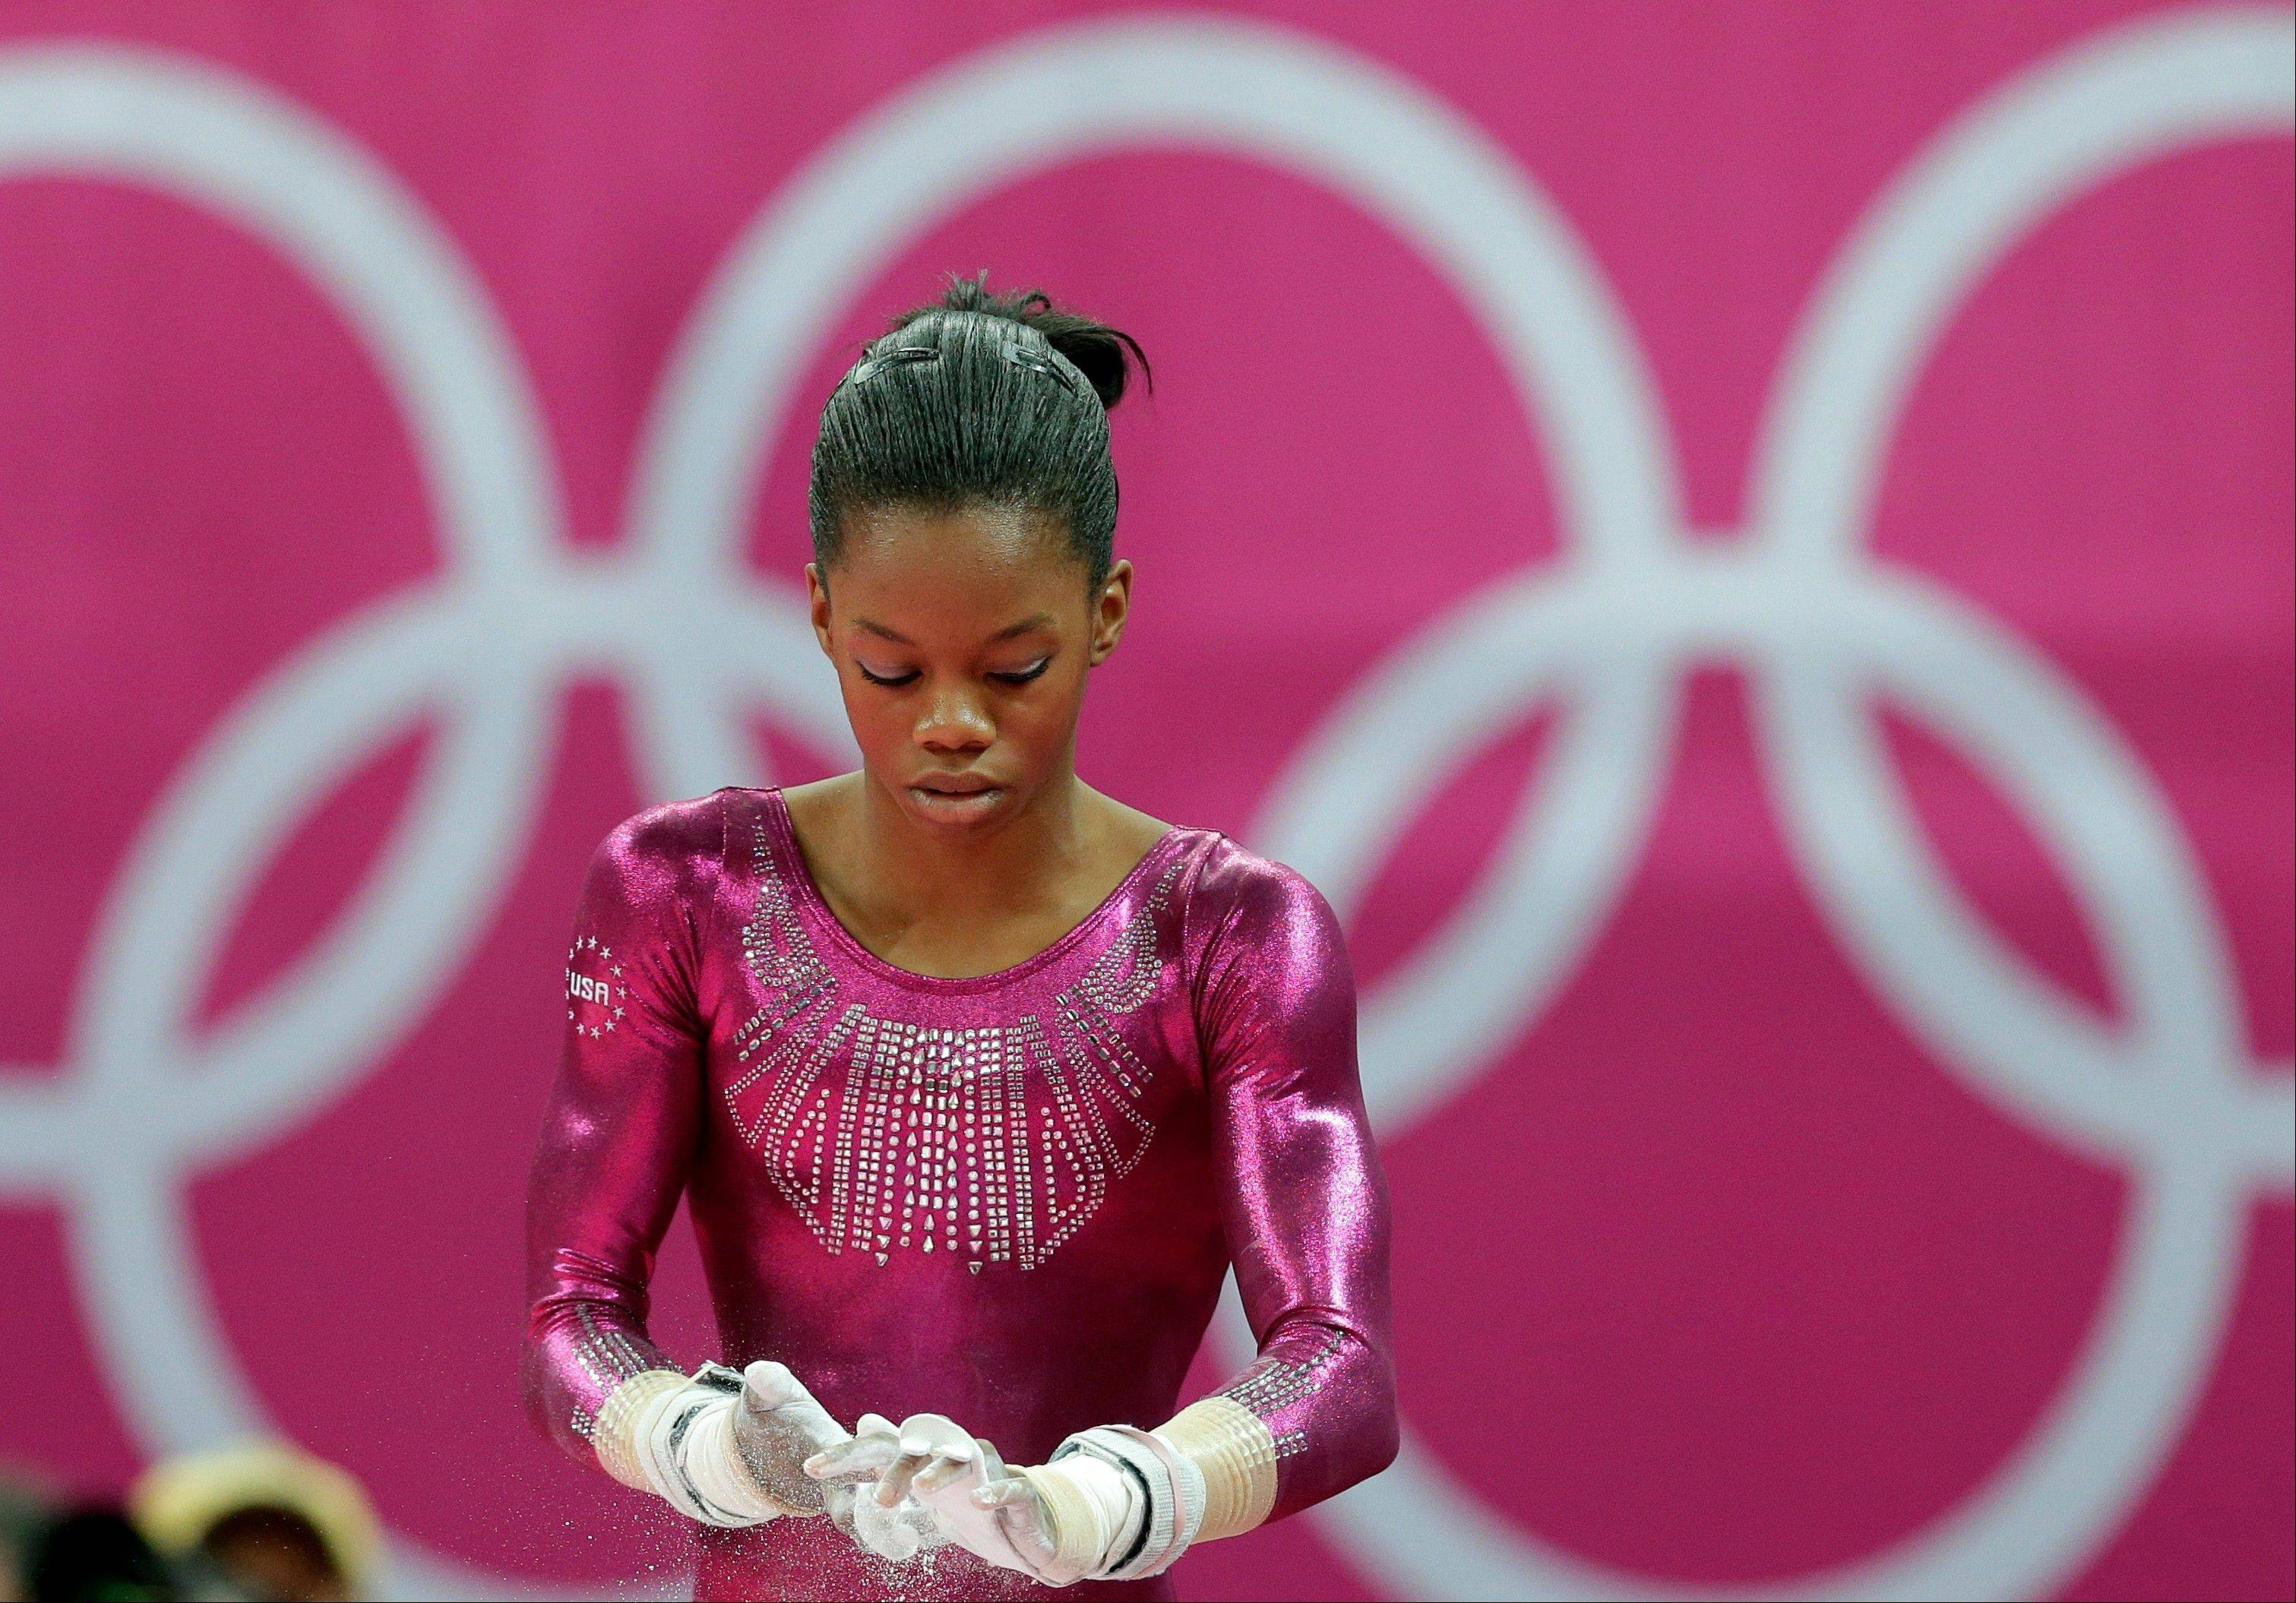 U.S. gymnast Gabrielle Douglas chalks her hands before performing on the uneven bars Thursday during the artistic gymnastics women's individual all-around competition. NBC's researchers are finding that people who know the results of London Olympics events before they are shown on tape delay are more -- not less -- likely to watch them.